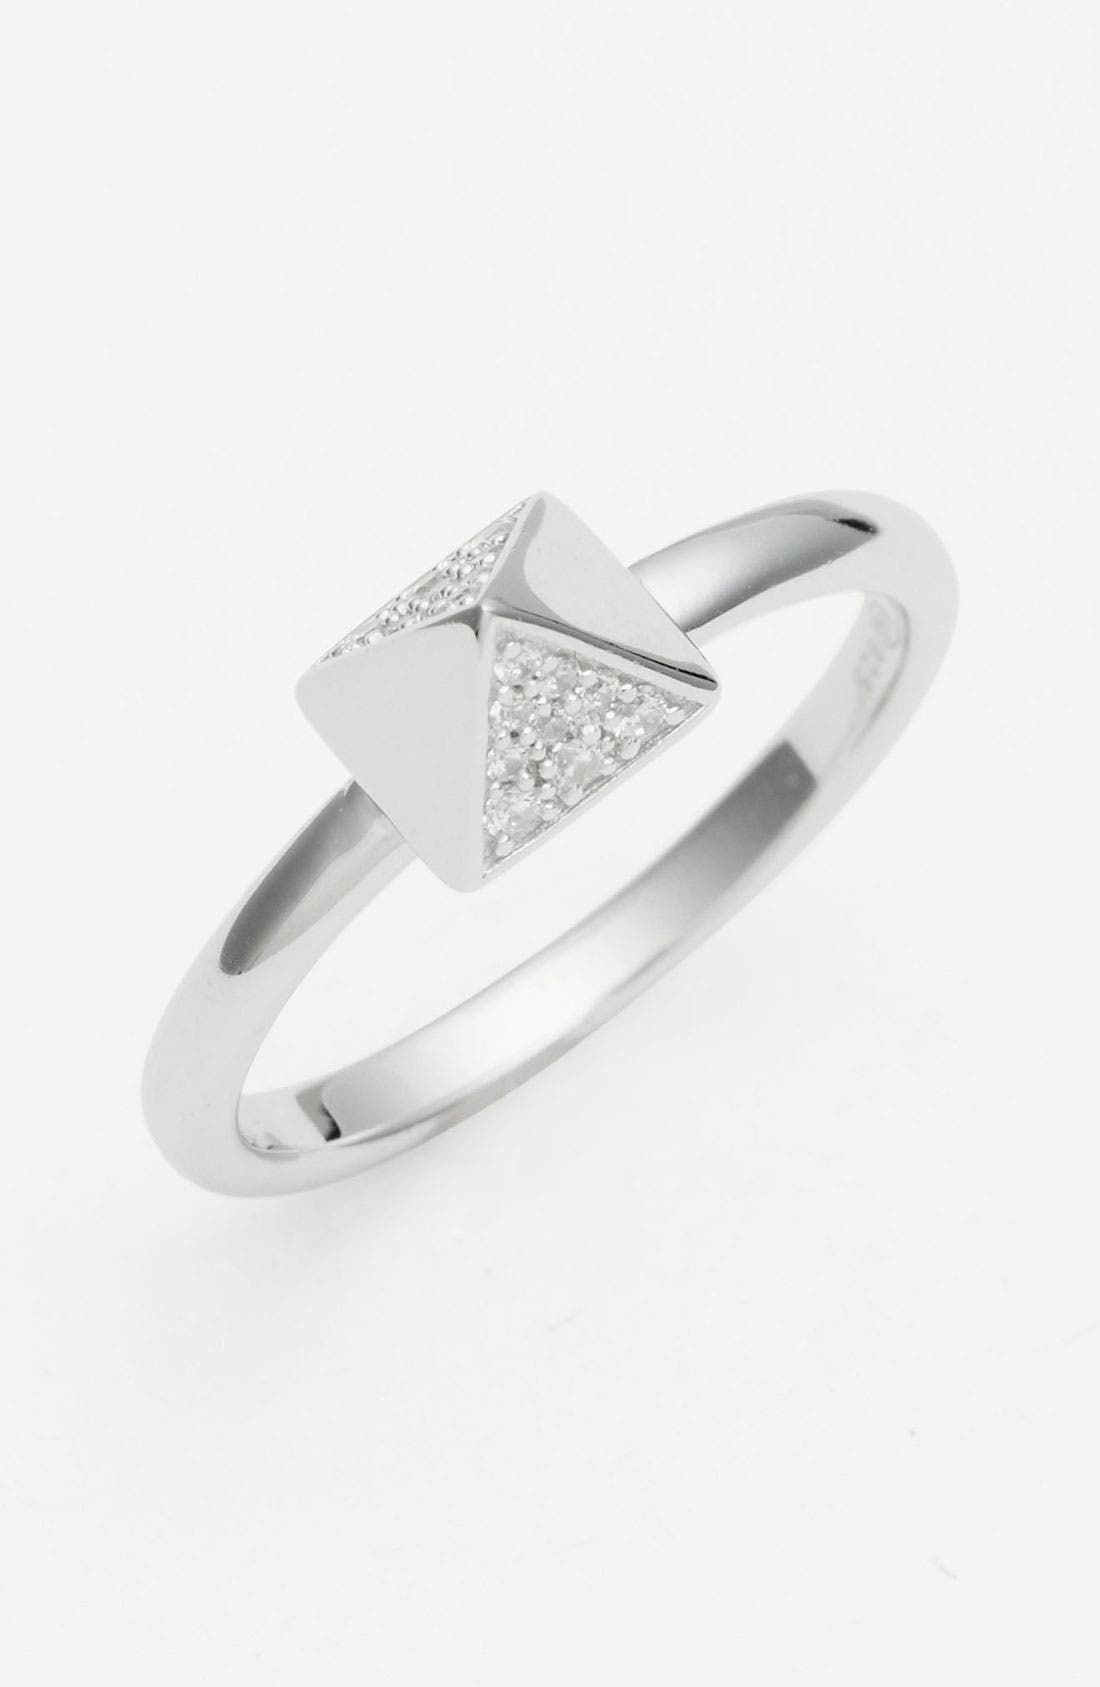 Main Image - Tom Binns 'Bejewelled' Pavé Stud Ring